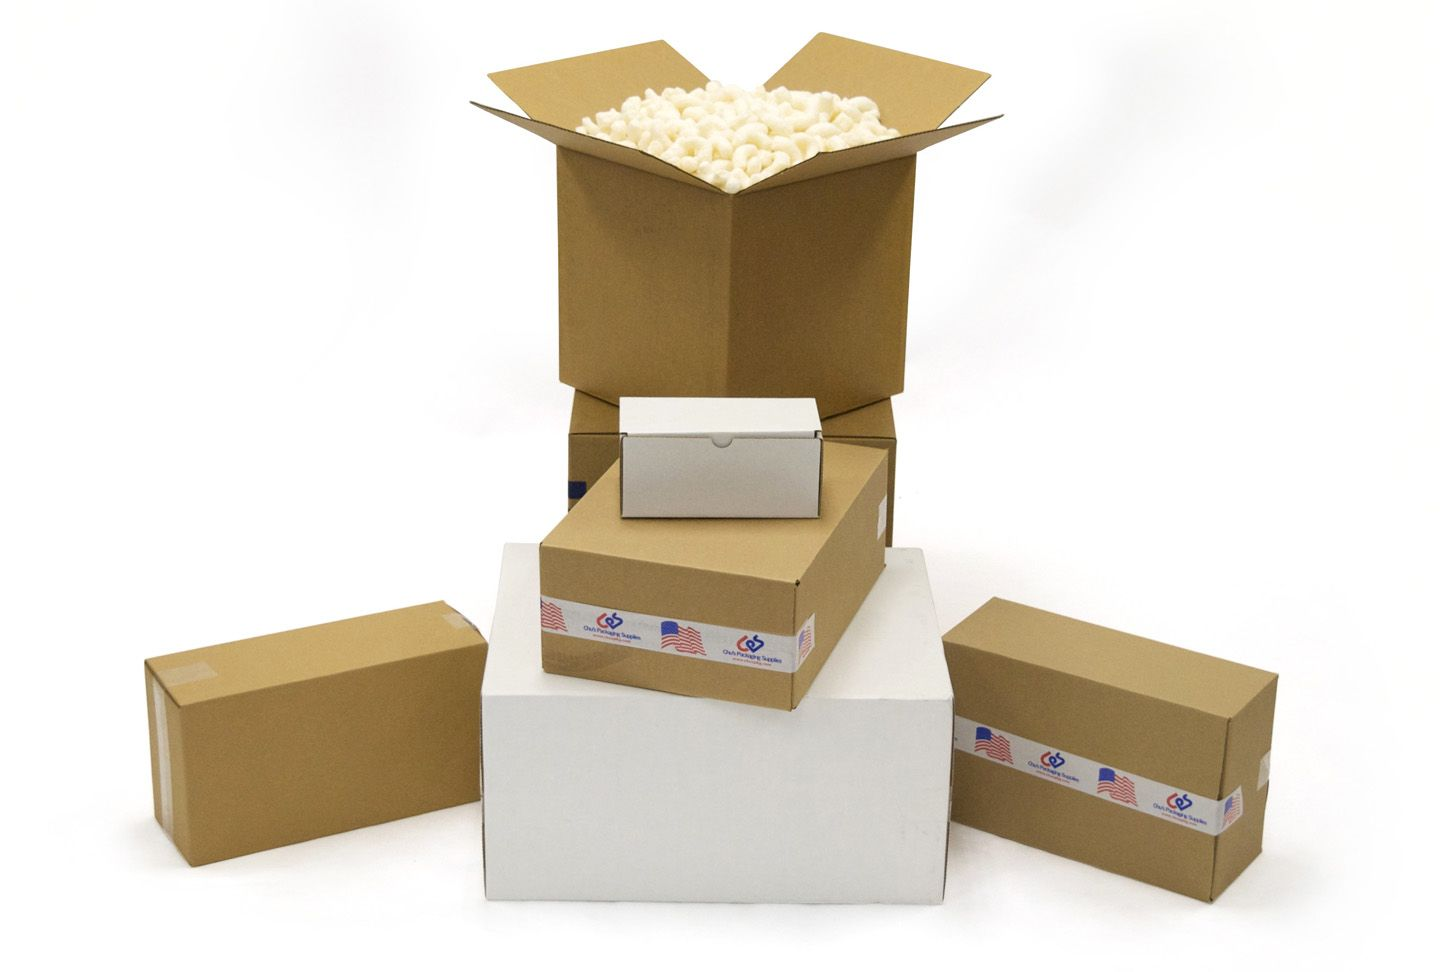 Dependable Packaging is one of the leading corrugated box